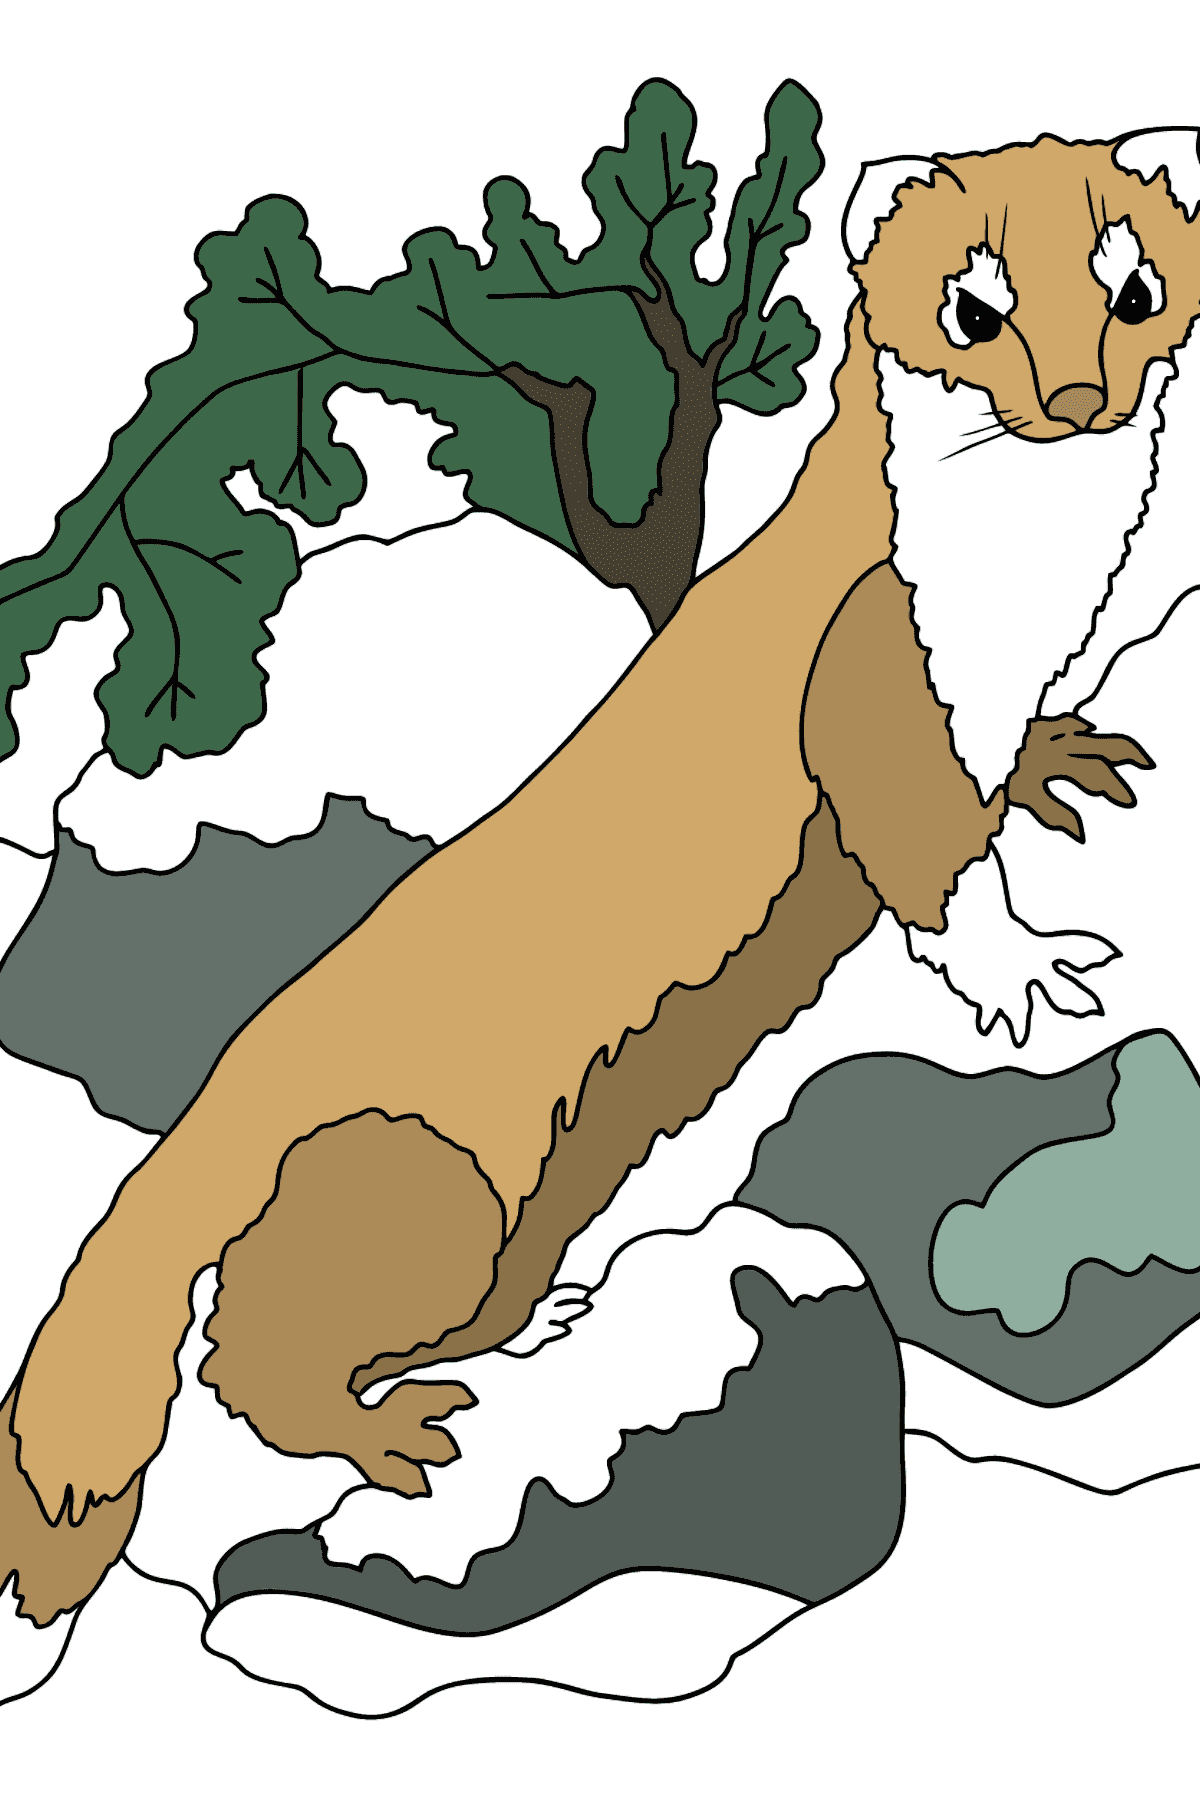 Coloring Page - An Ermine - A Sly Hunter - Coloring Pages for Kids